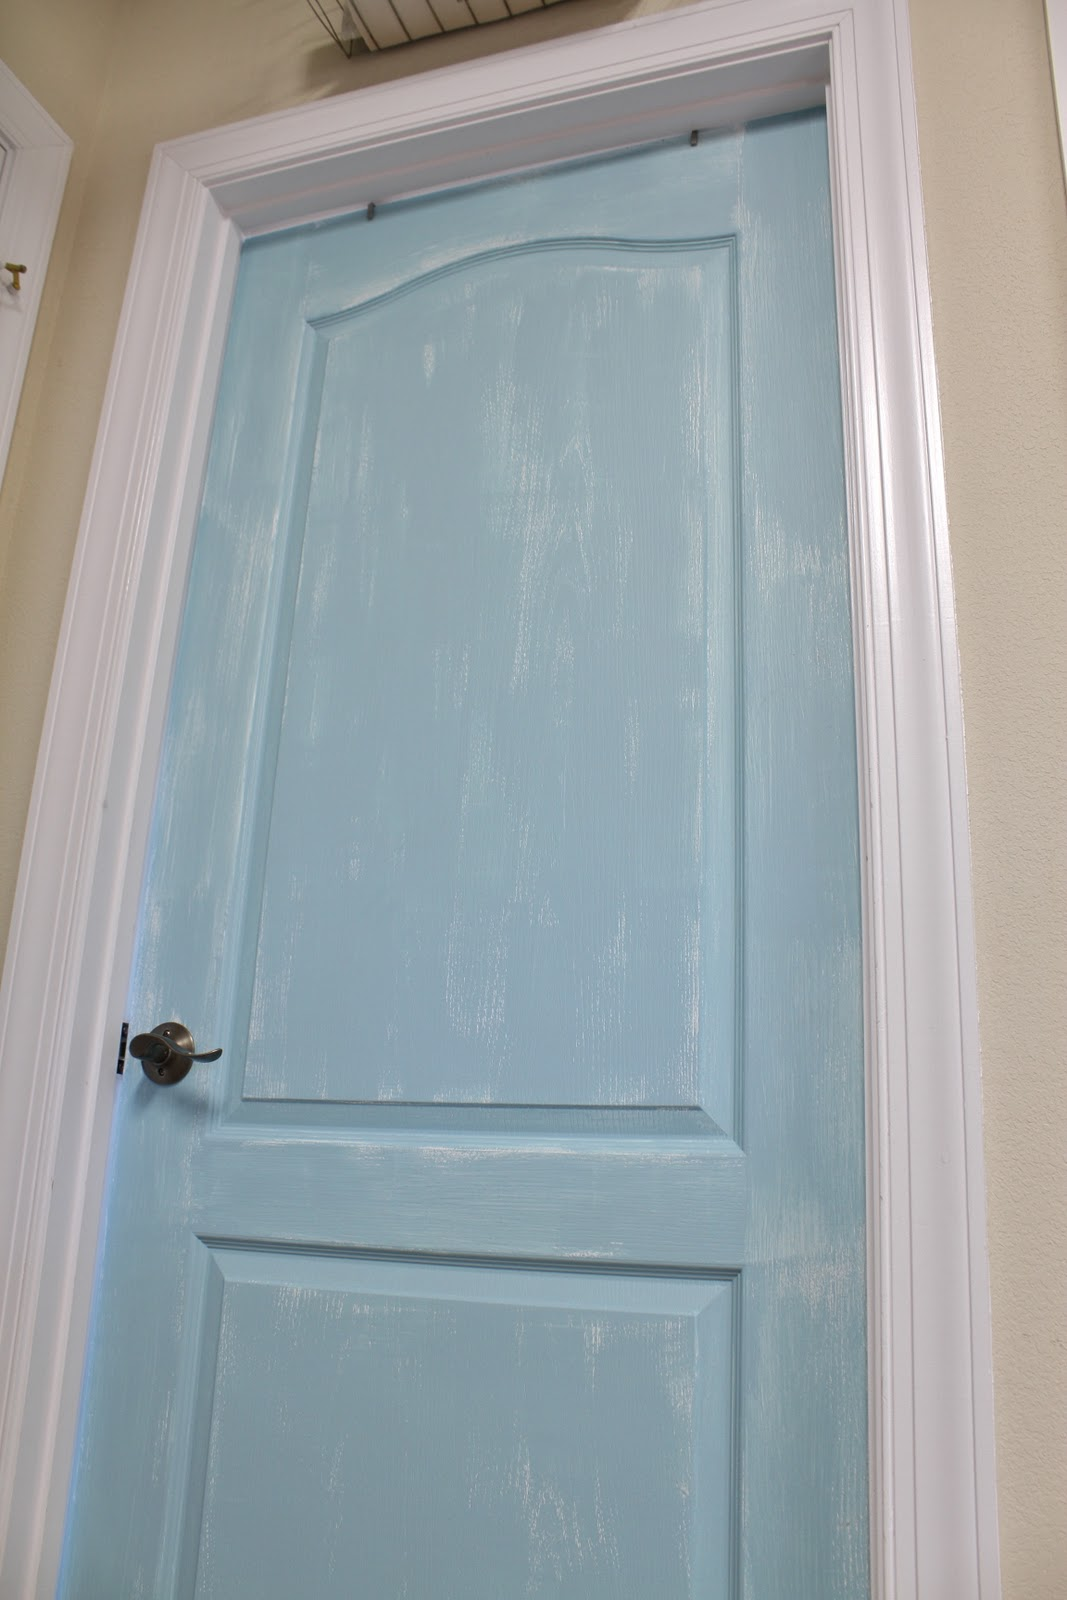 & The Painted Door Reveal | Perfectly Imperfect™ Blog